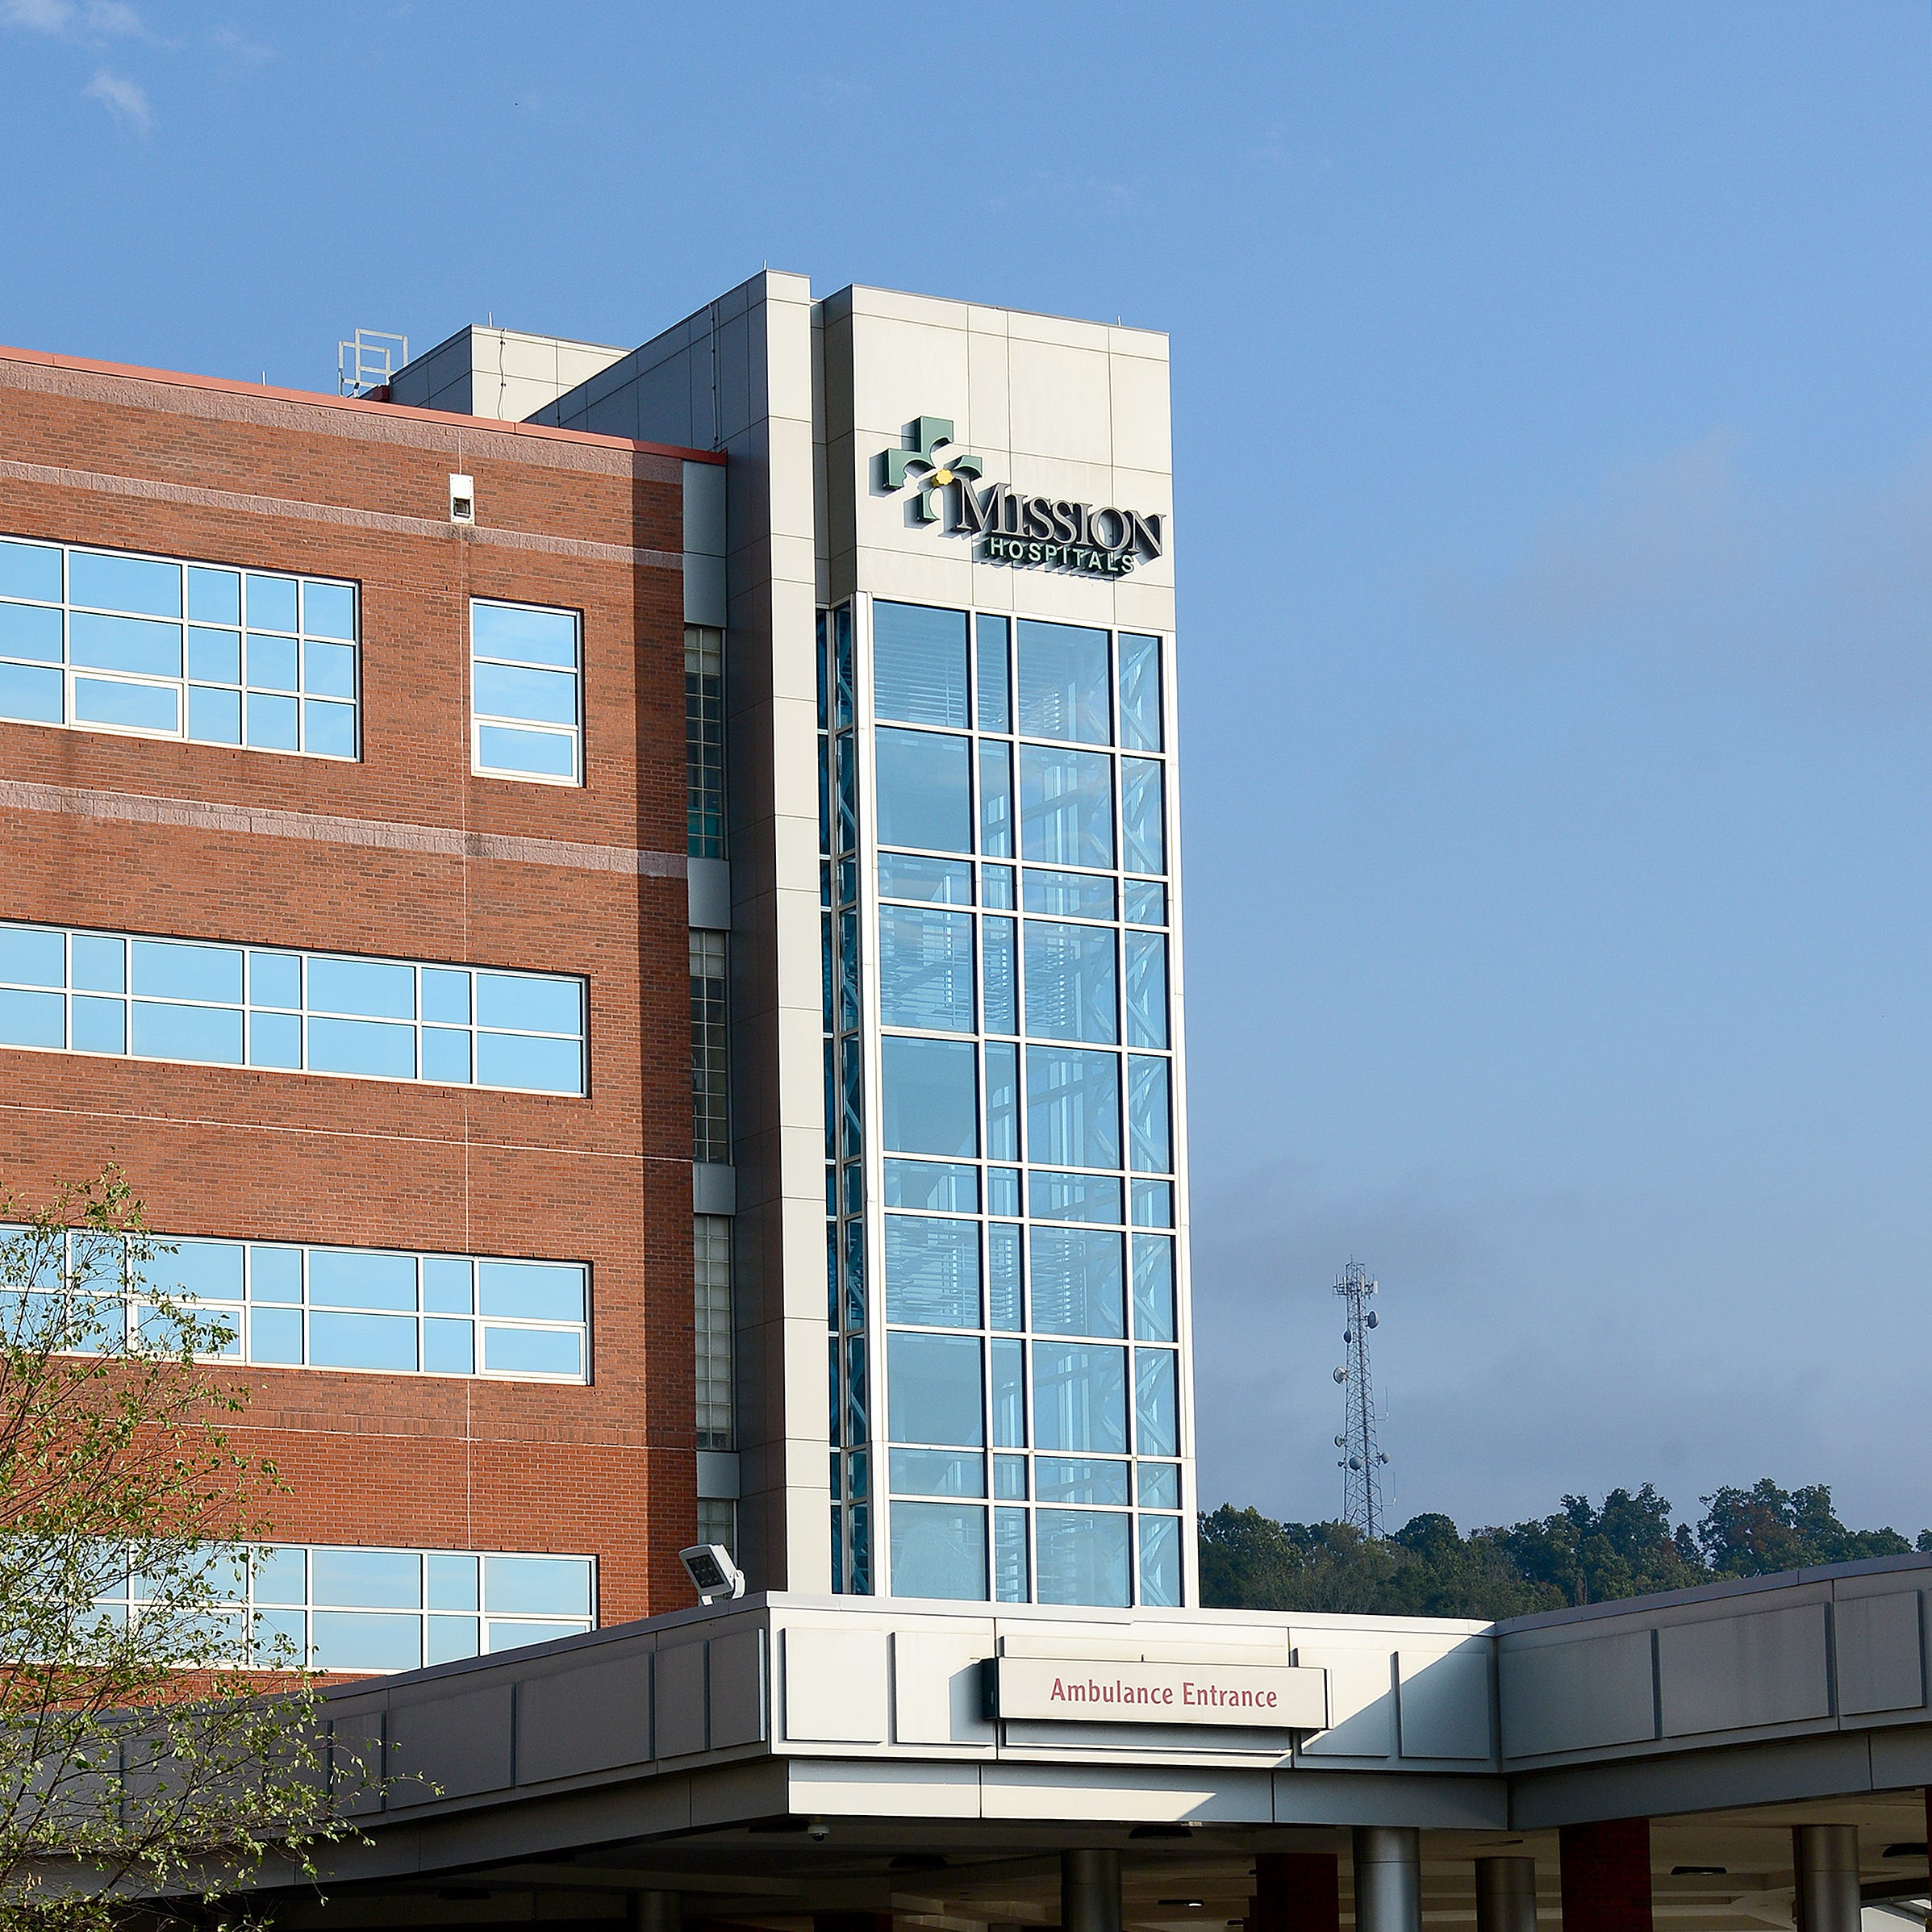 HCA Healthcare fighting $633M Buncombe County tax assessment on Mission property